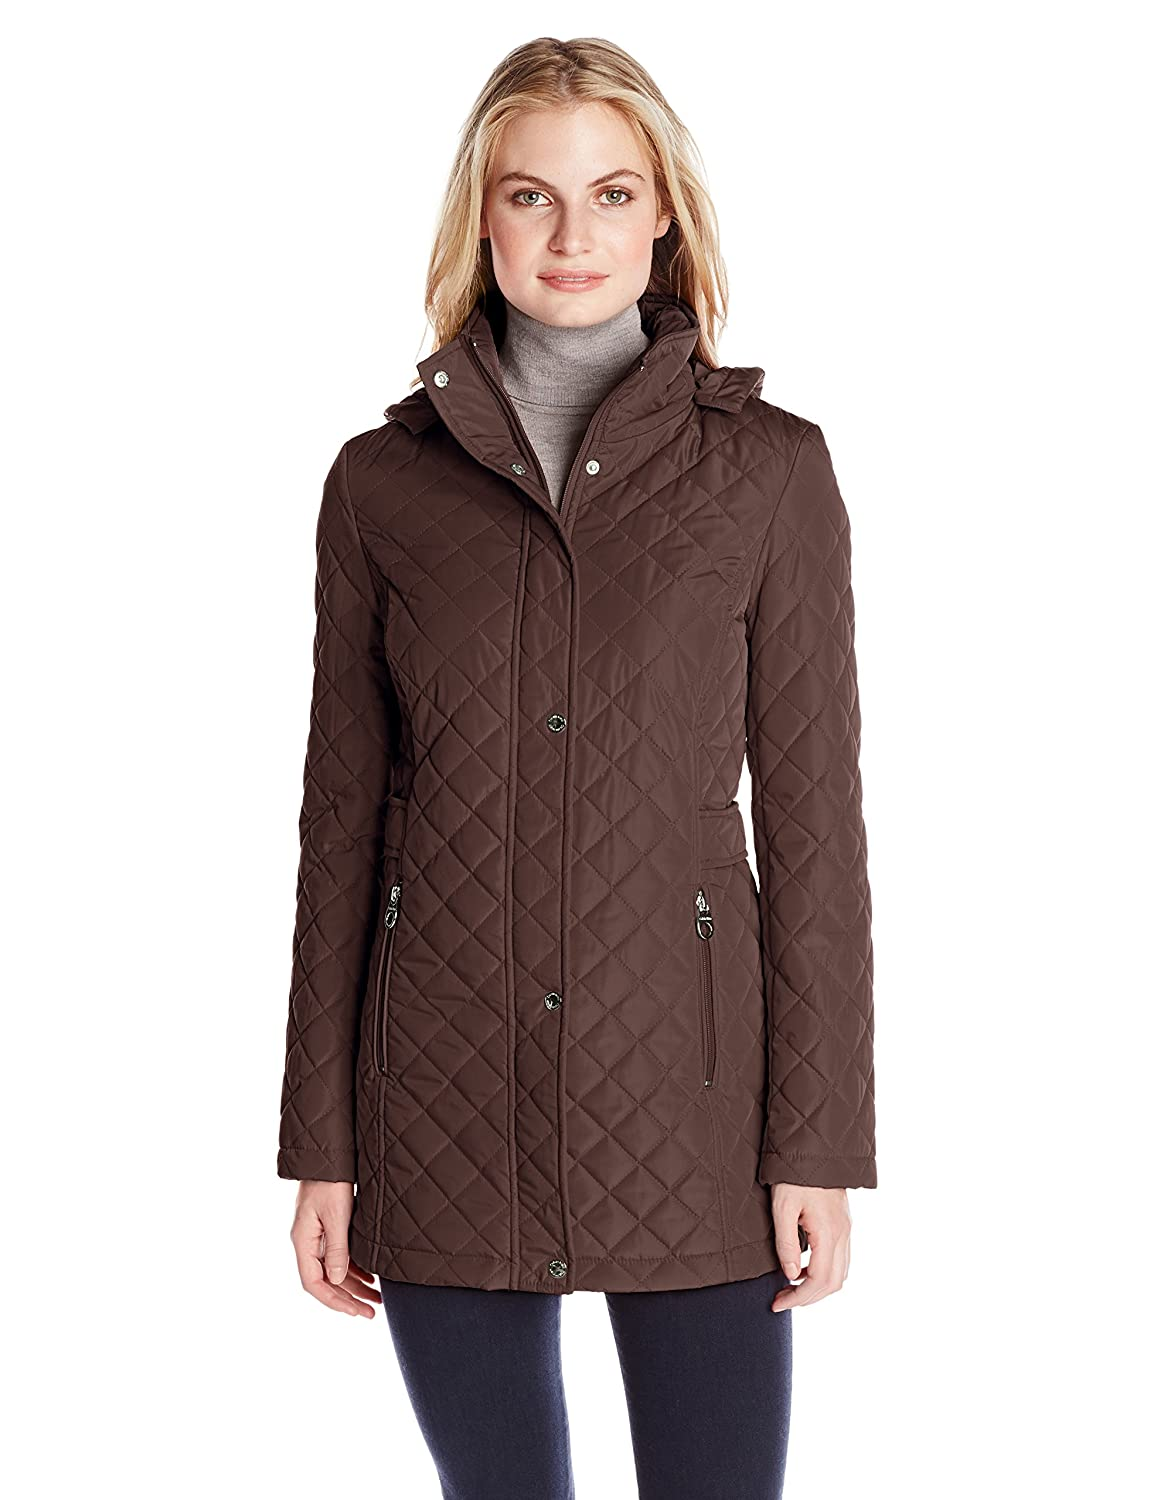 215600d57c0e6 Women s Classic Quilted Jacket with Side Tabs